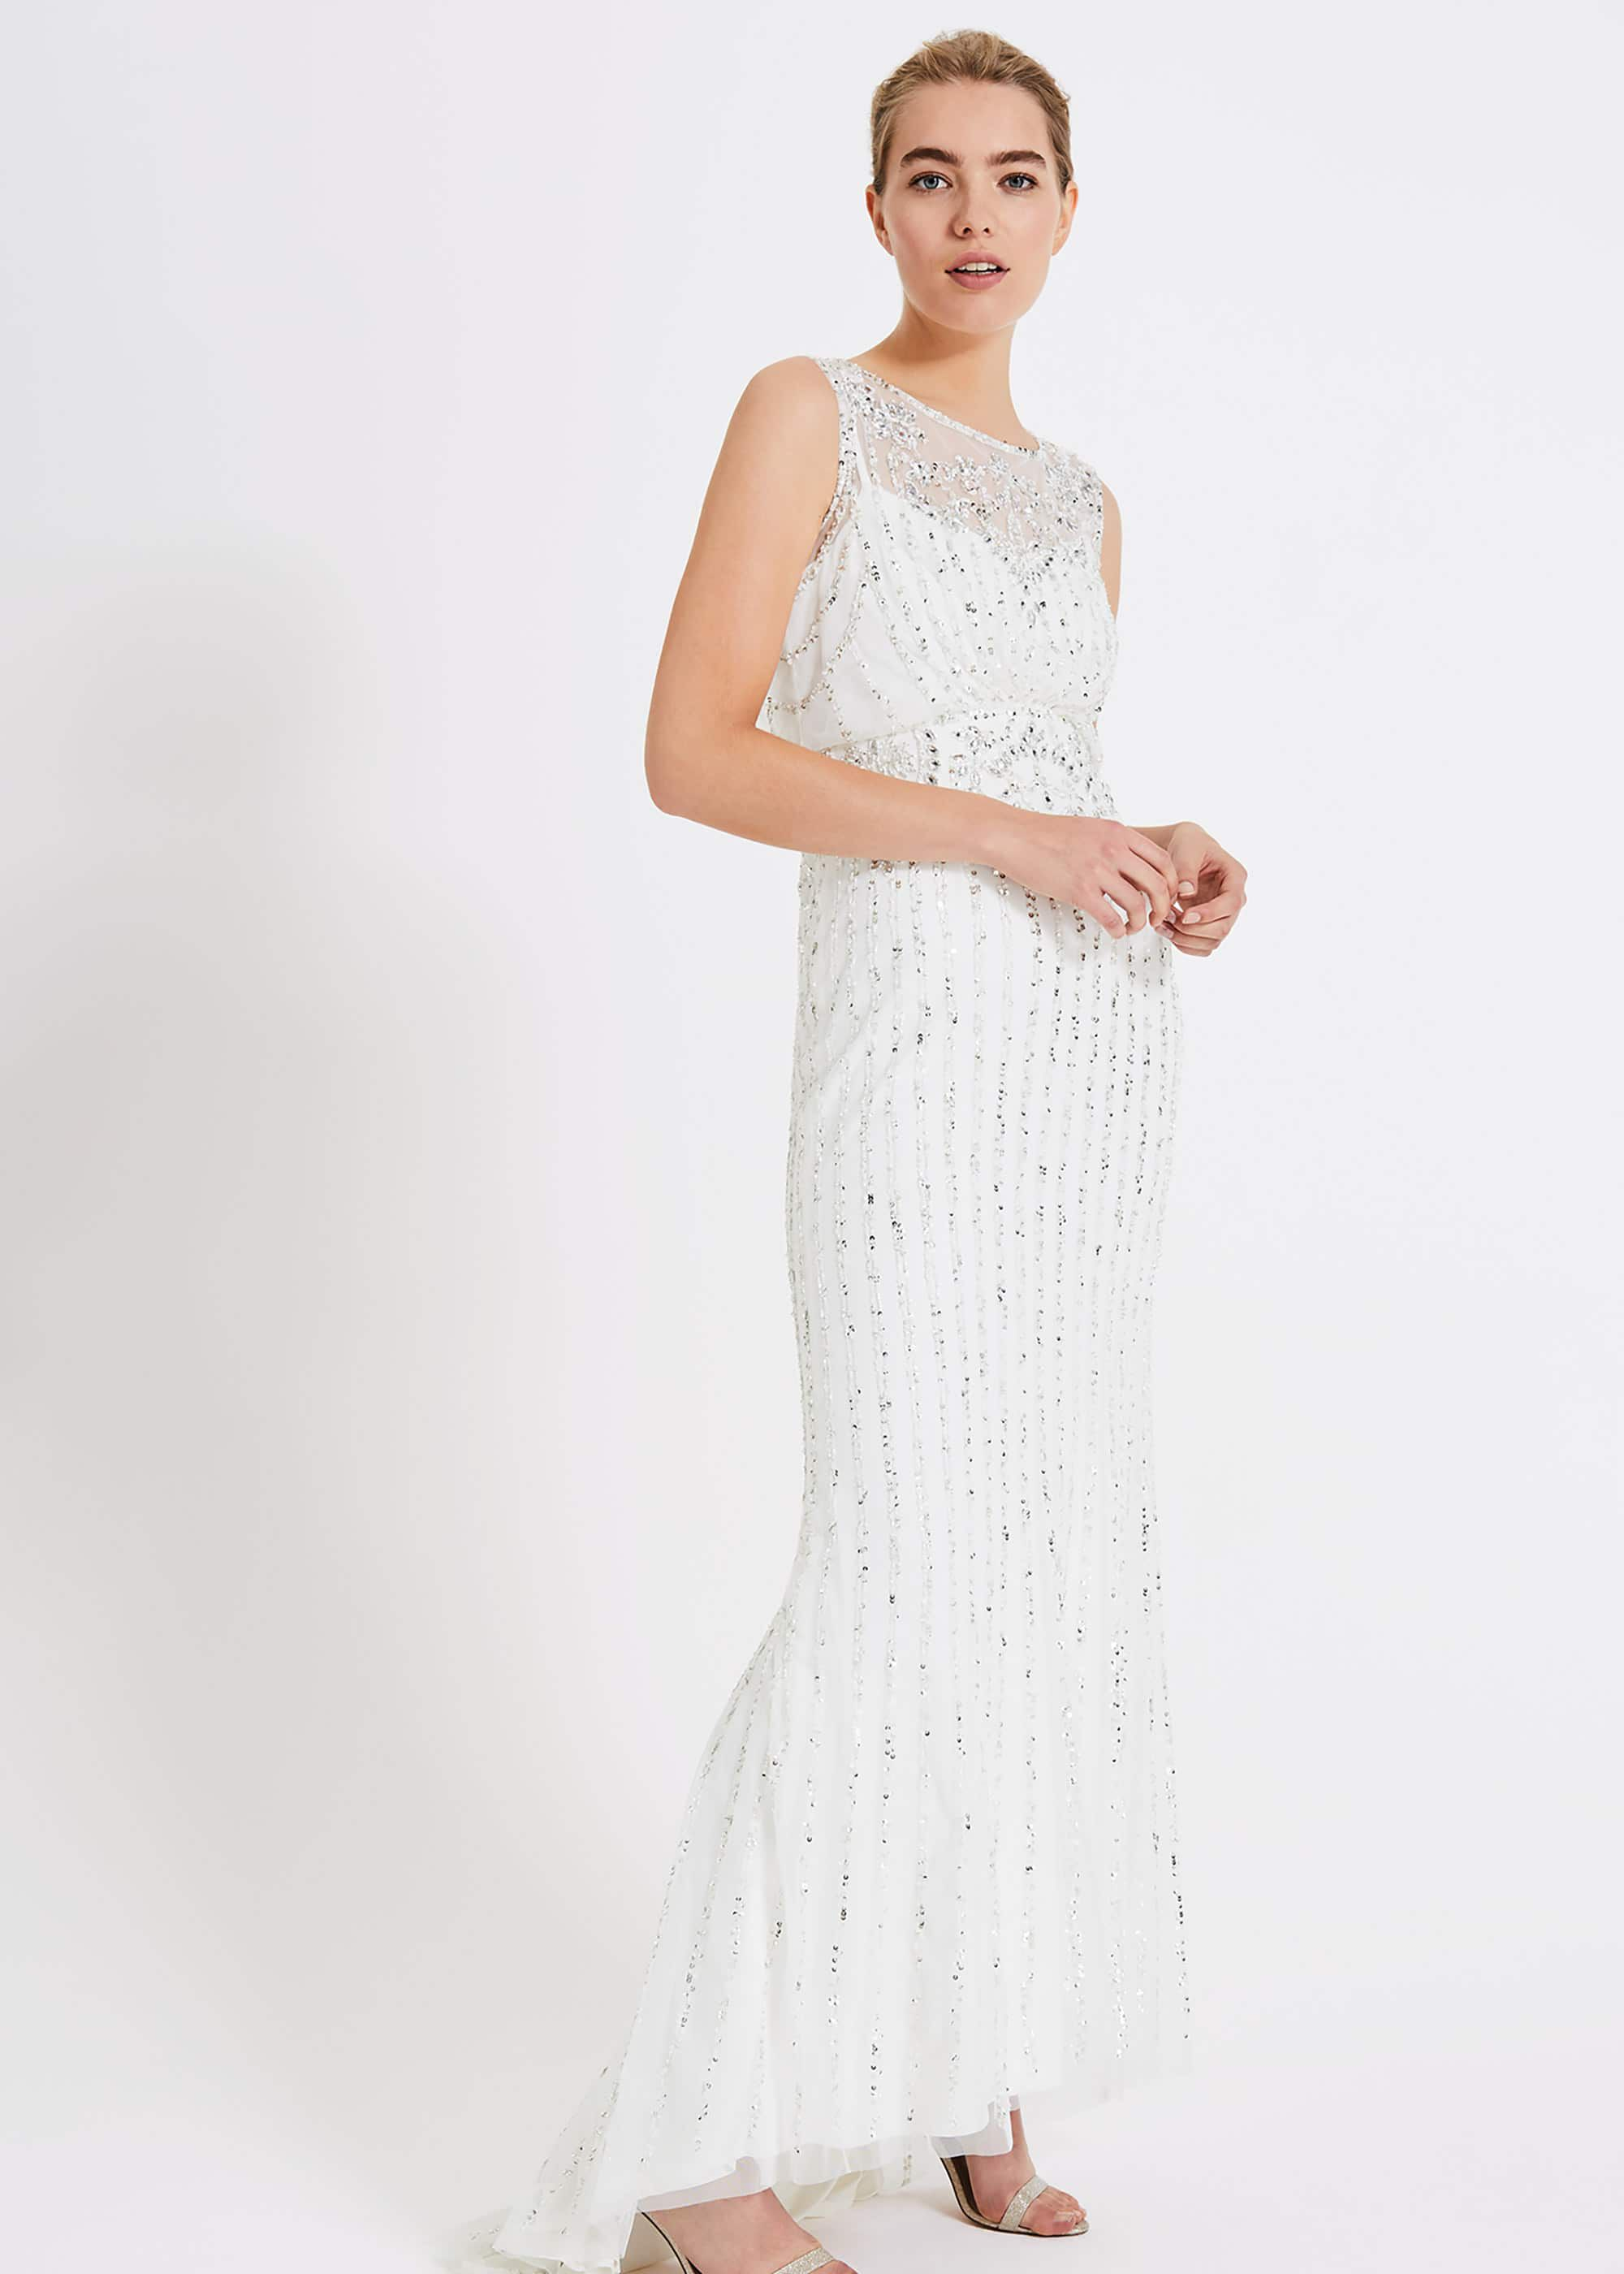 1920s Wedding Dresses- Art Deco Wedding Dress, Gatsby Wedding Dress Phase Eight Milly Beaded Wedding Dress White Wedding £295.00 AT vintagedancer.com